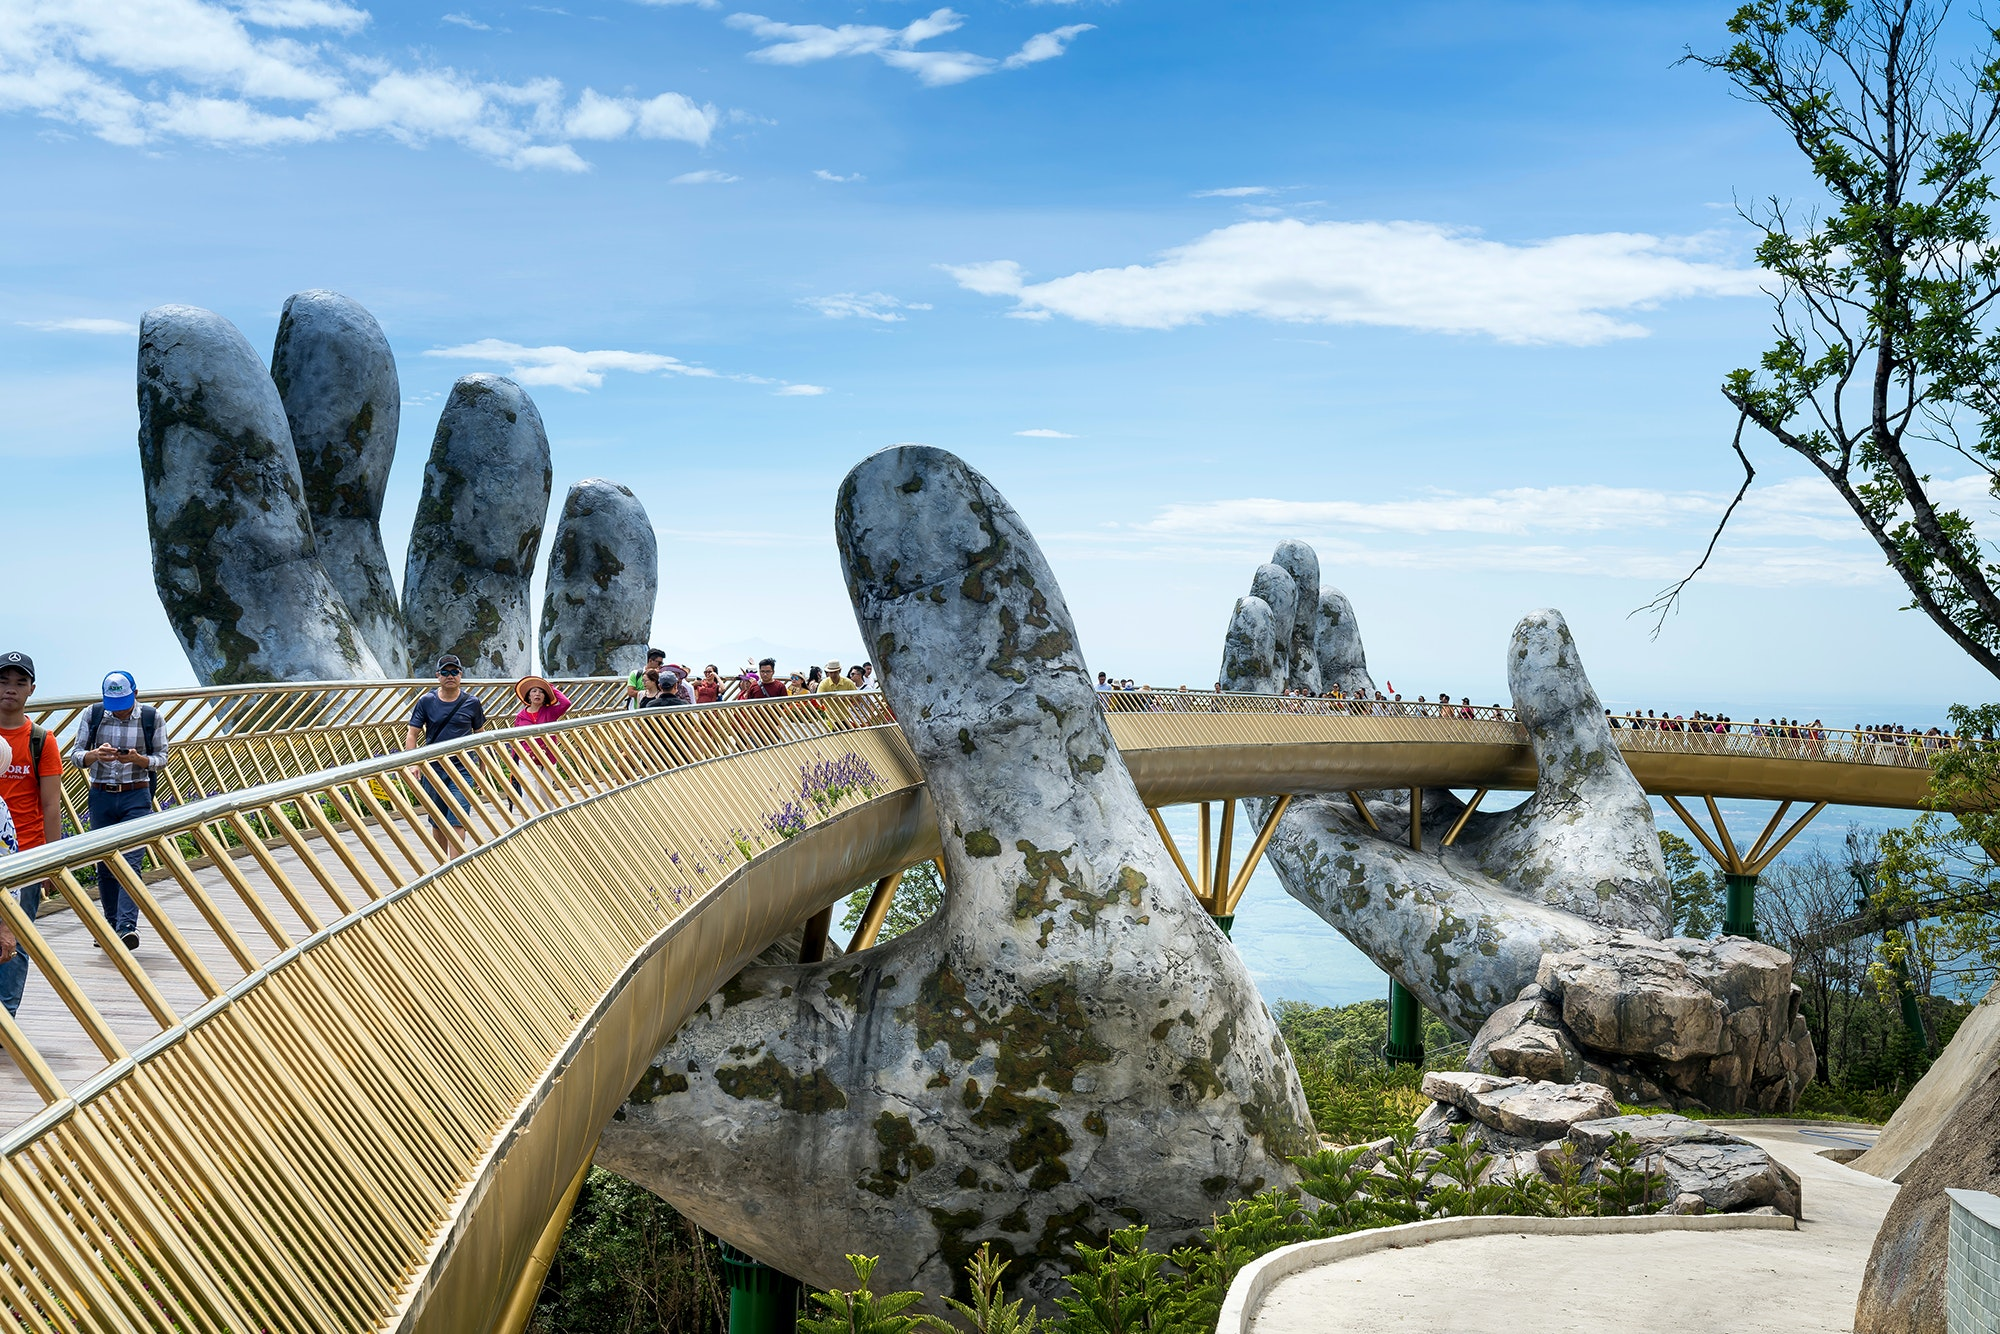 Vietnam's new Golden Bridge has been drawing tourists to the Ba Na Hills outside of Danang.